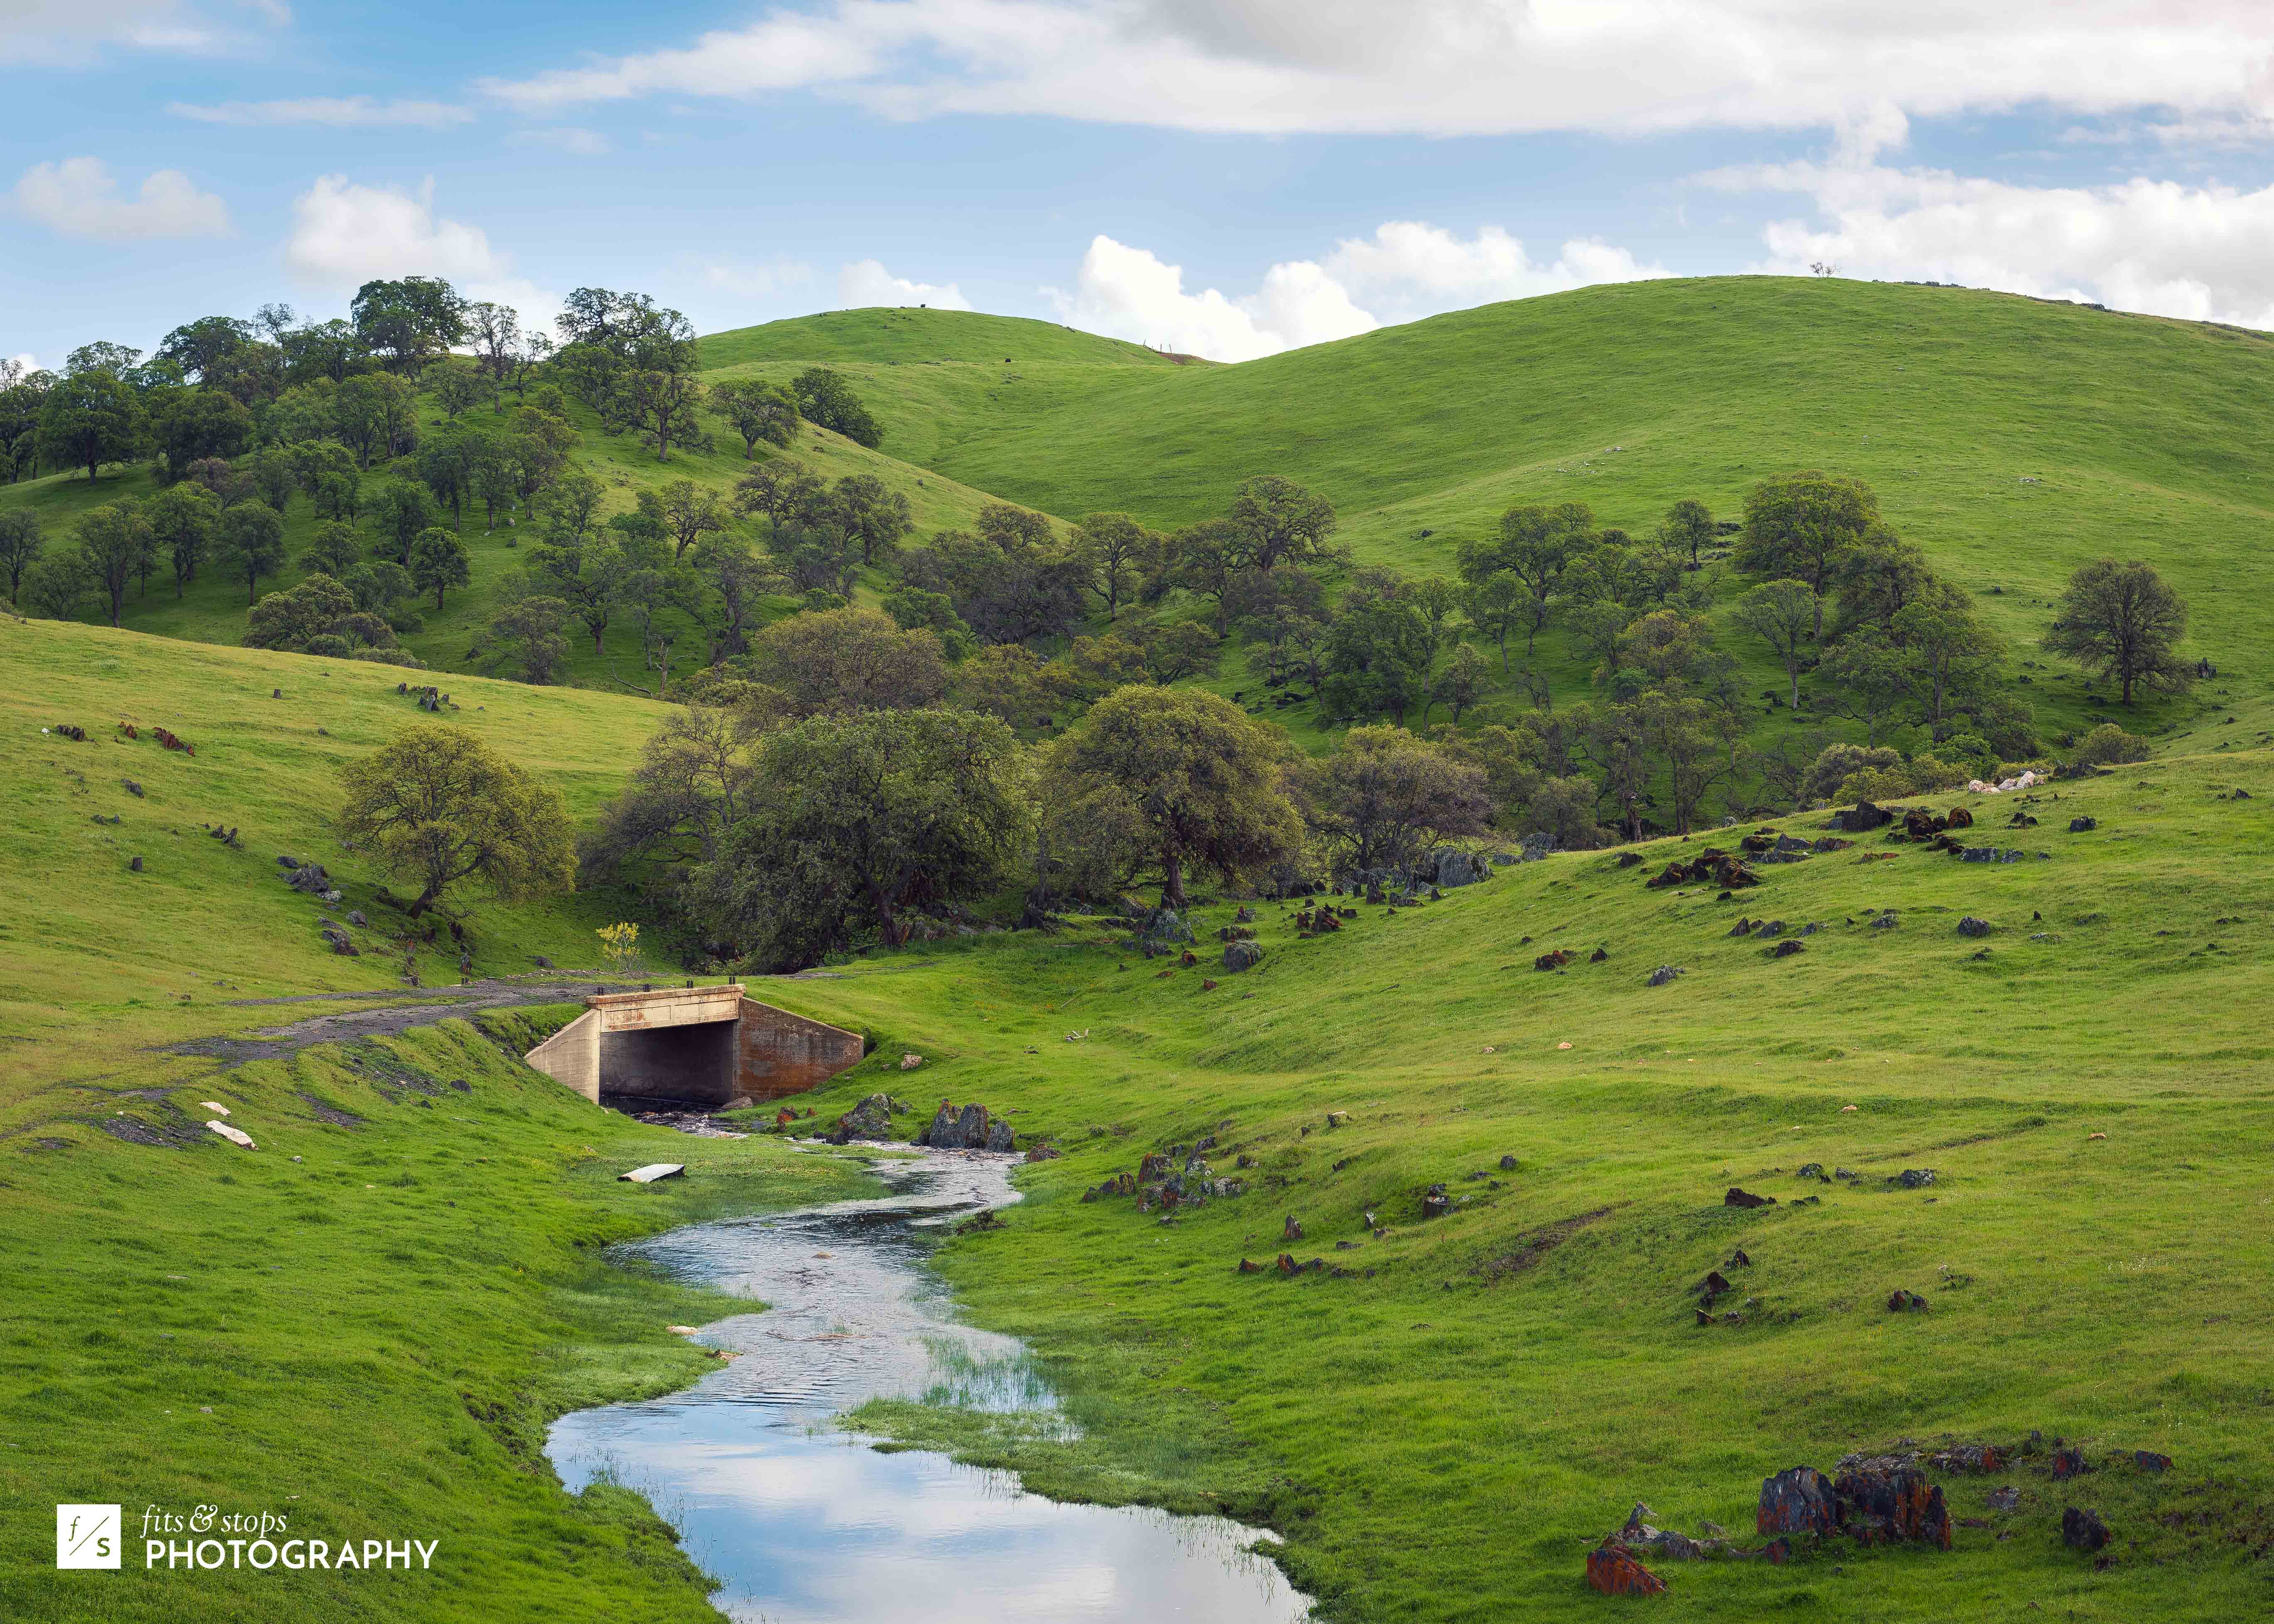 A landscape photograph of the lush pastures east of Merced, California, renewed by a recent downpour of rain. A swollen creek runs underneath an old stone bridge.